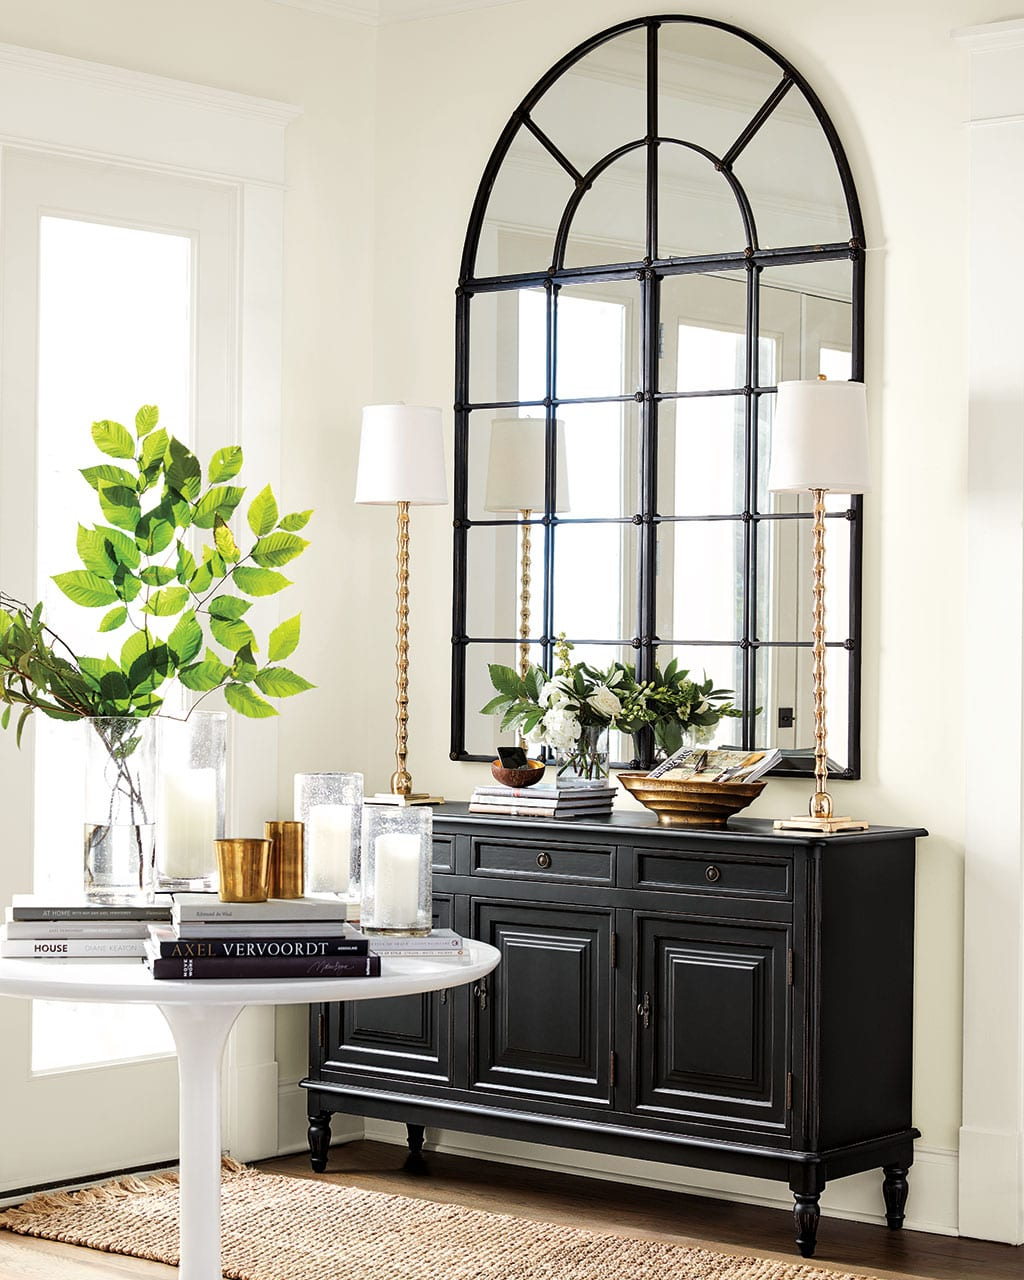 love decorating with black and white